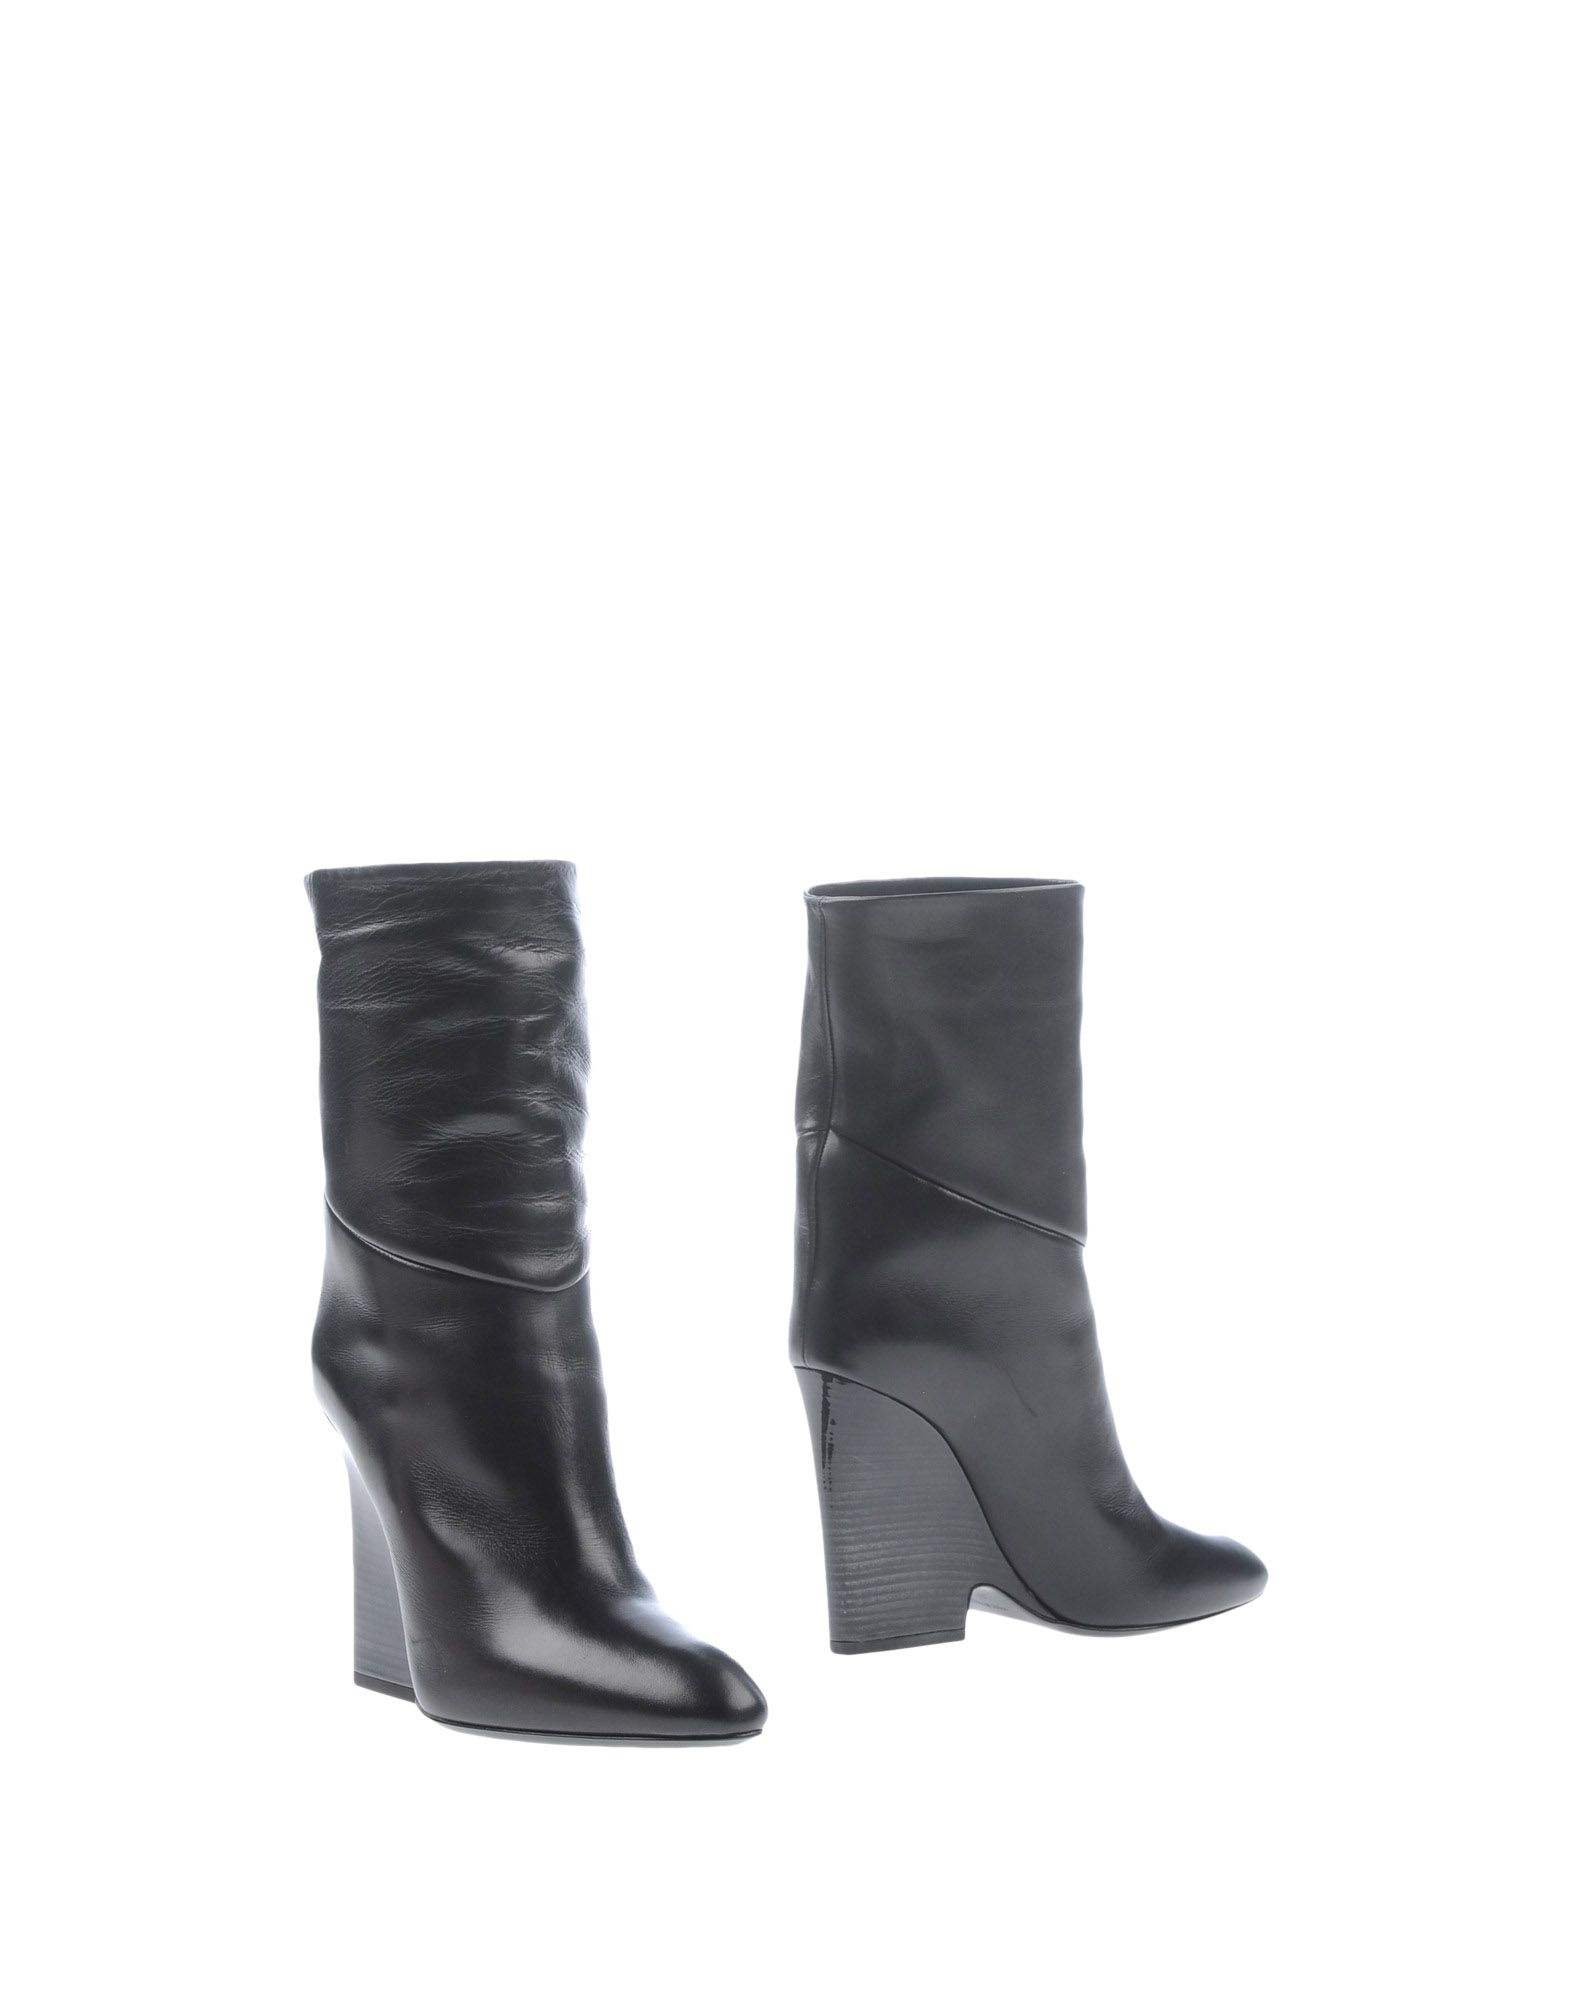 Jimmy choo Ankle Boots in Black | Lyst